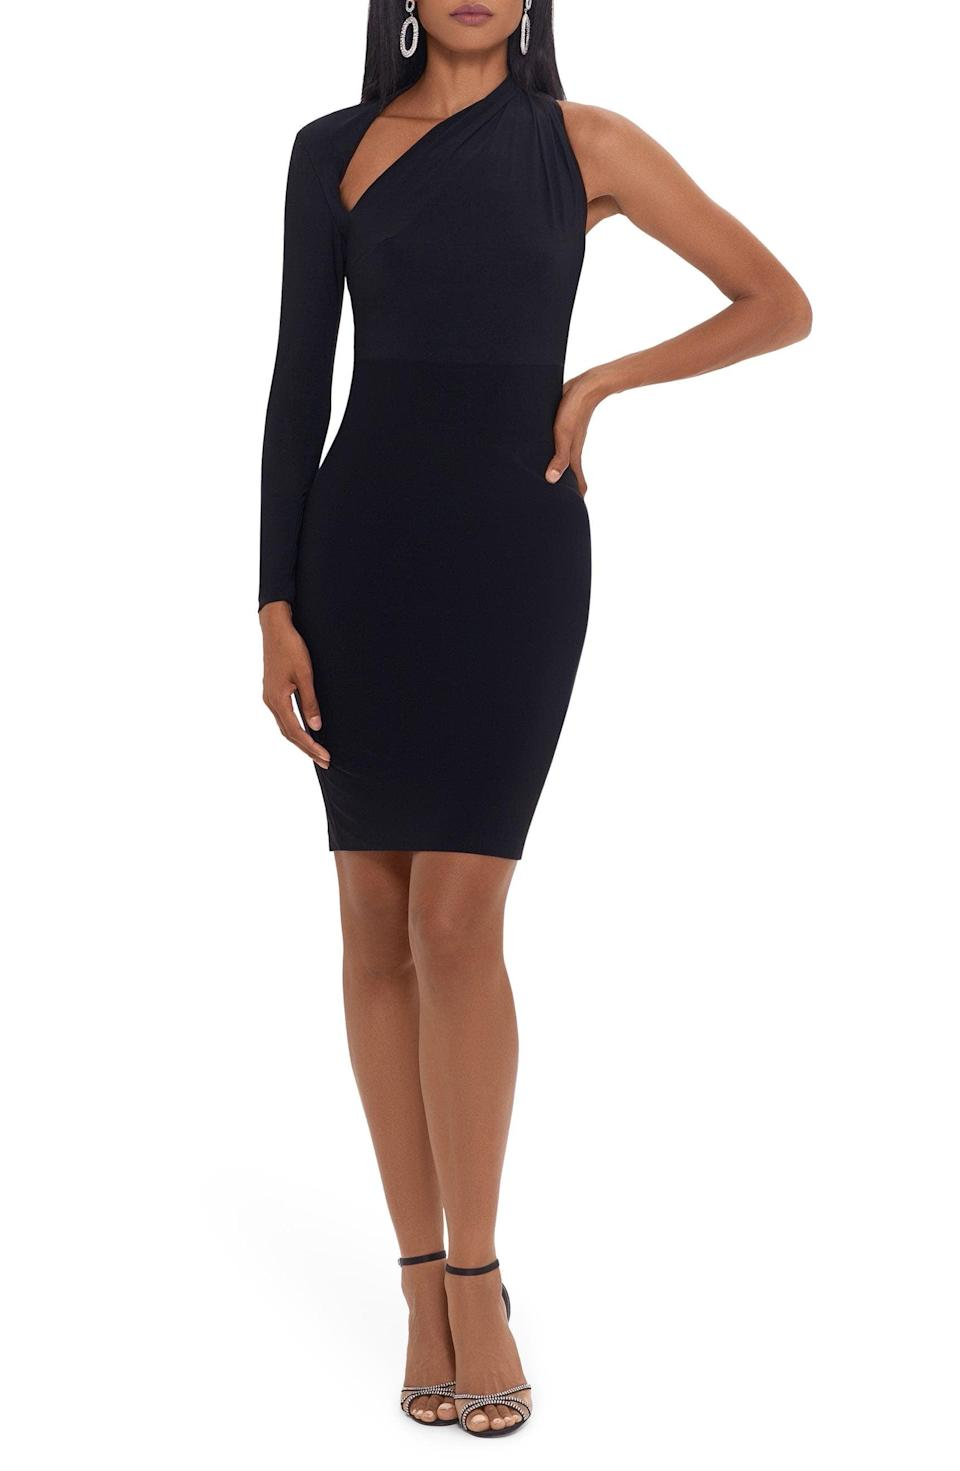 <p>This <span>Betsy &amp; Adam One-Shoulder Sheath Cocktail Dress</span> ($169) makes an alluring choice for an evening party. With the slashed neckline and one-shoulder silhouette, it has an architectural design. </p>